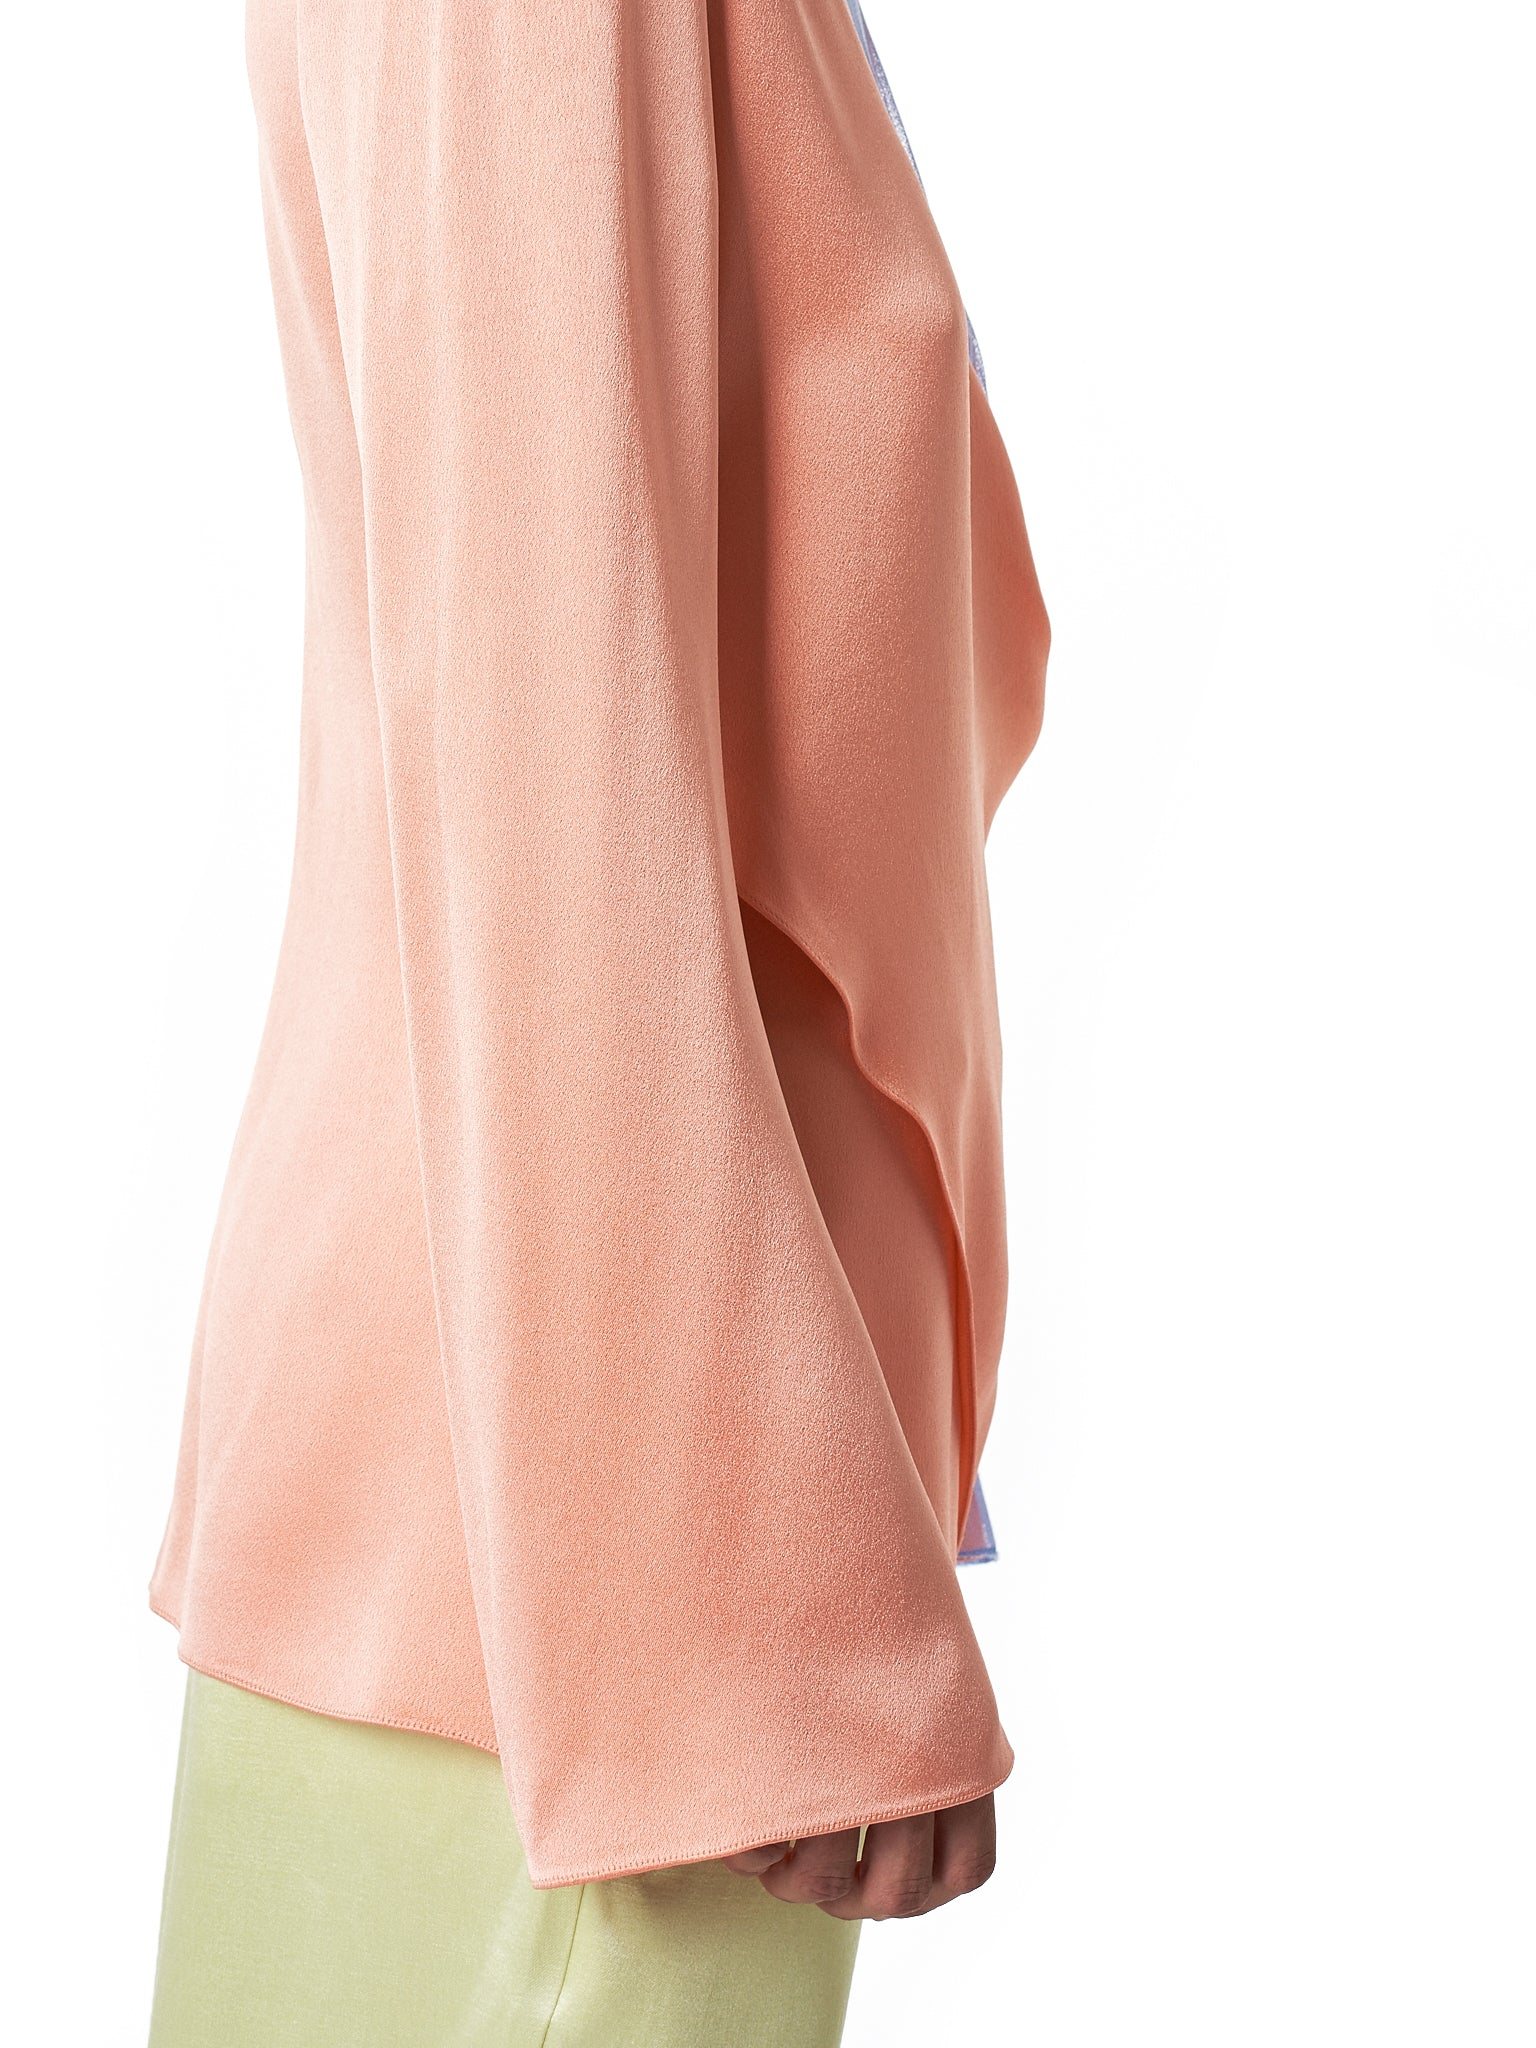 'Bari' V-neck Tulle Layered Top (9BS3032-LT-PEACH)